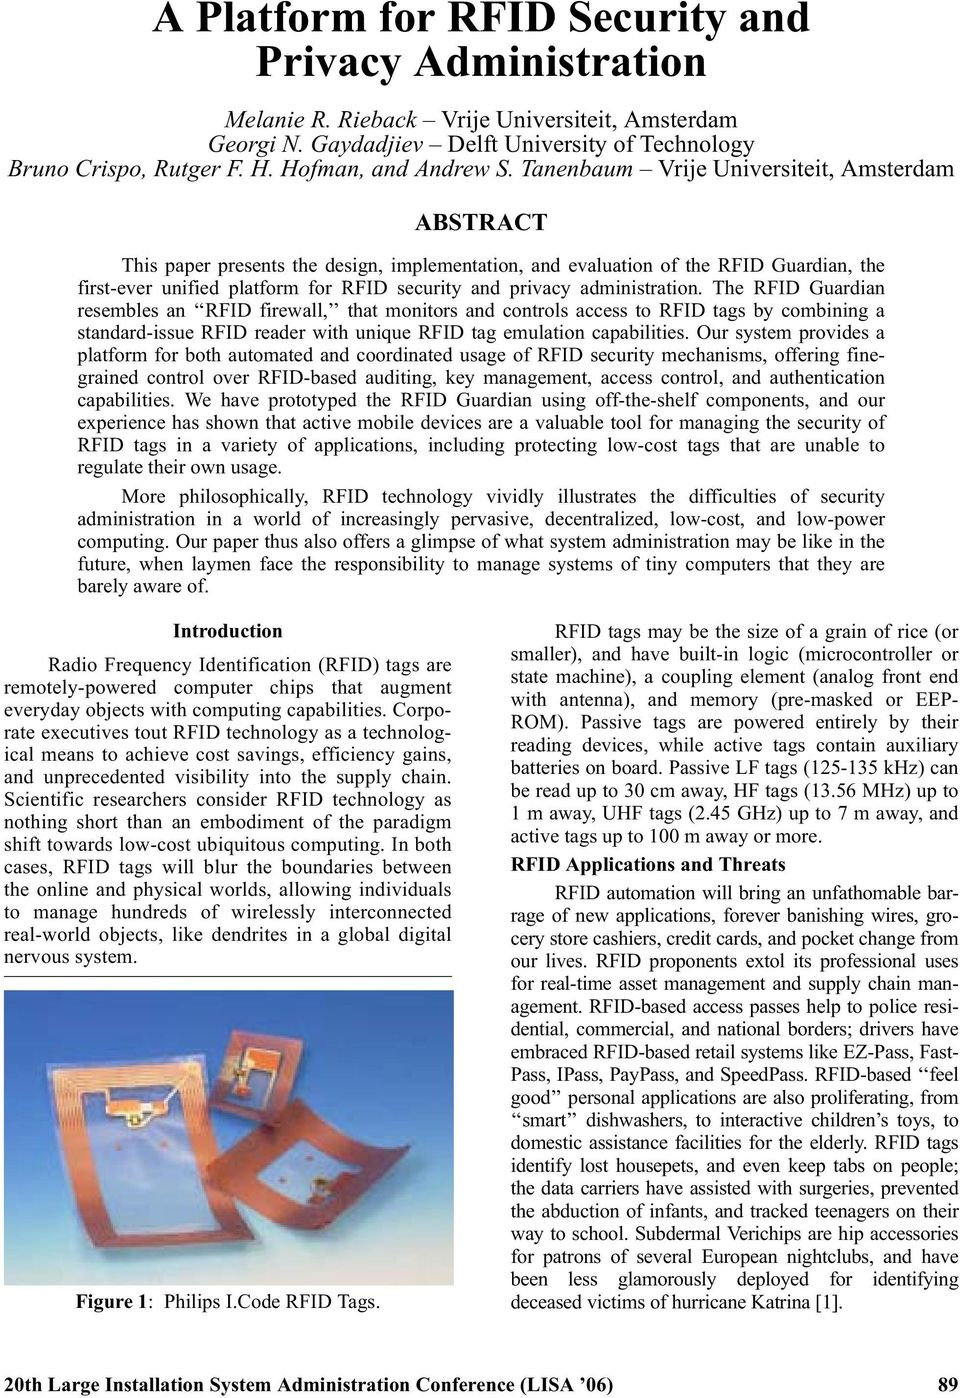 Tanenbaum Vrije Universiteit, Amsterdam ABSTRACT This paper presents the design, implementation, and evaluation of the RFID Guardian, the first-ever unified platform for RFID security and privacy